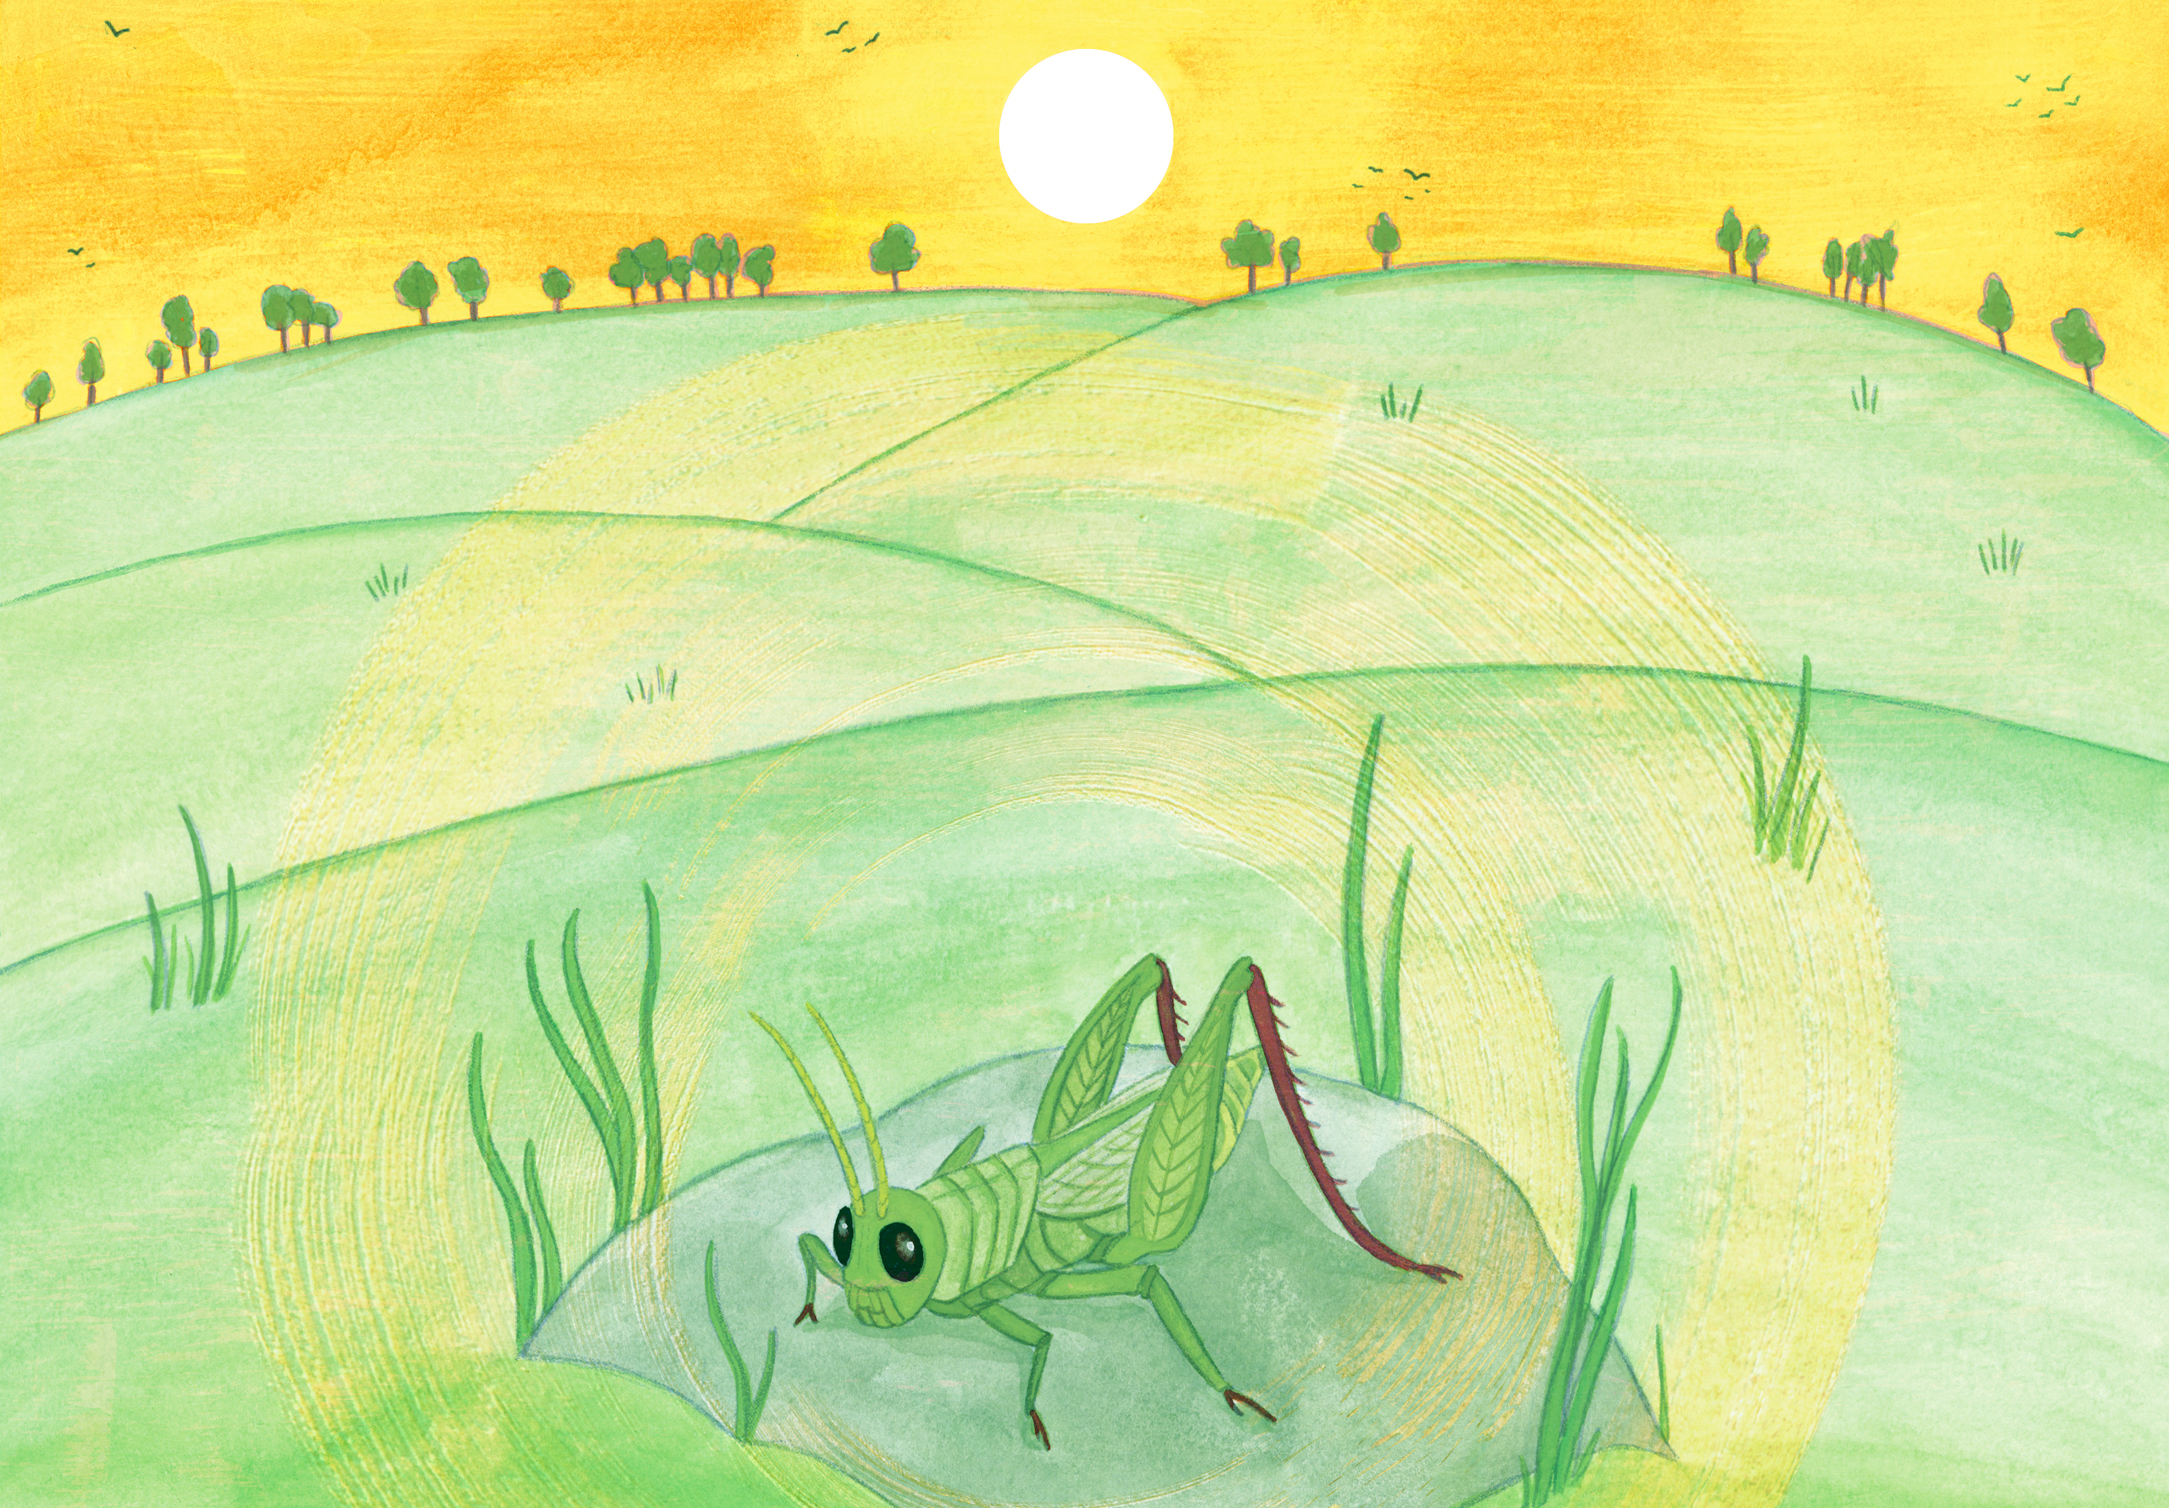 ON THE GRASSHOPPER AND CRICKET pg 1